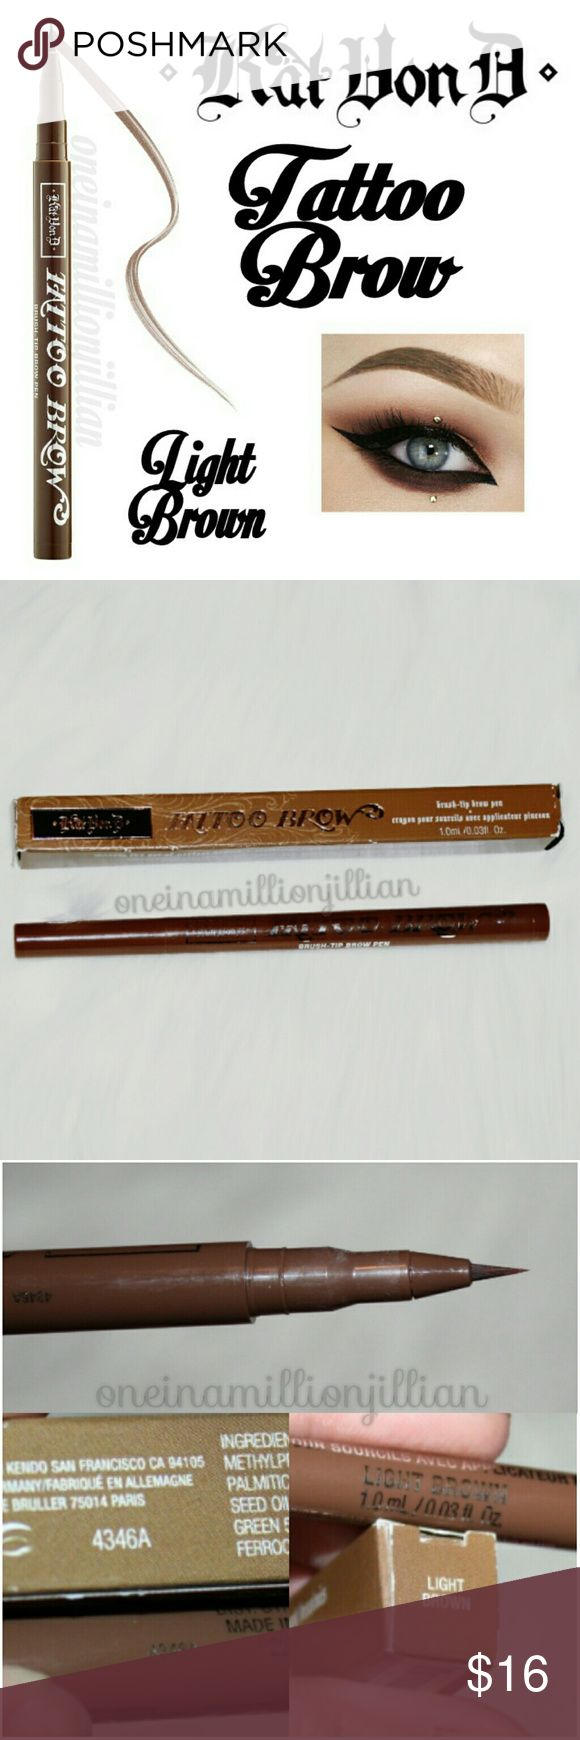 Kat Von D Tattoo Brow Pen - Light Brown New in Box  Full Sz & Authentic  Color: Light Brown  An innovative liquid brow liner with a precision brush tip so you can build natural to bold brows  Discover the makeup artist's secret to a naturally gorgeous face: sculpted, architectural brows. It took Kat 5 years to finalize the formula in a range of long-wear, natural-looking shades that won't fade or discolor. A compact brush tip imparts optimum control & precision so you can define arches with…